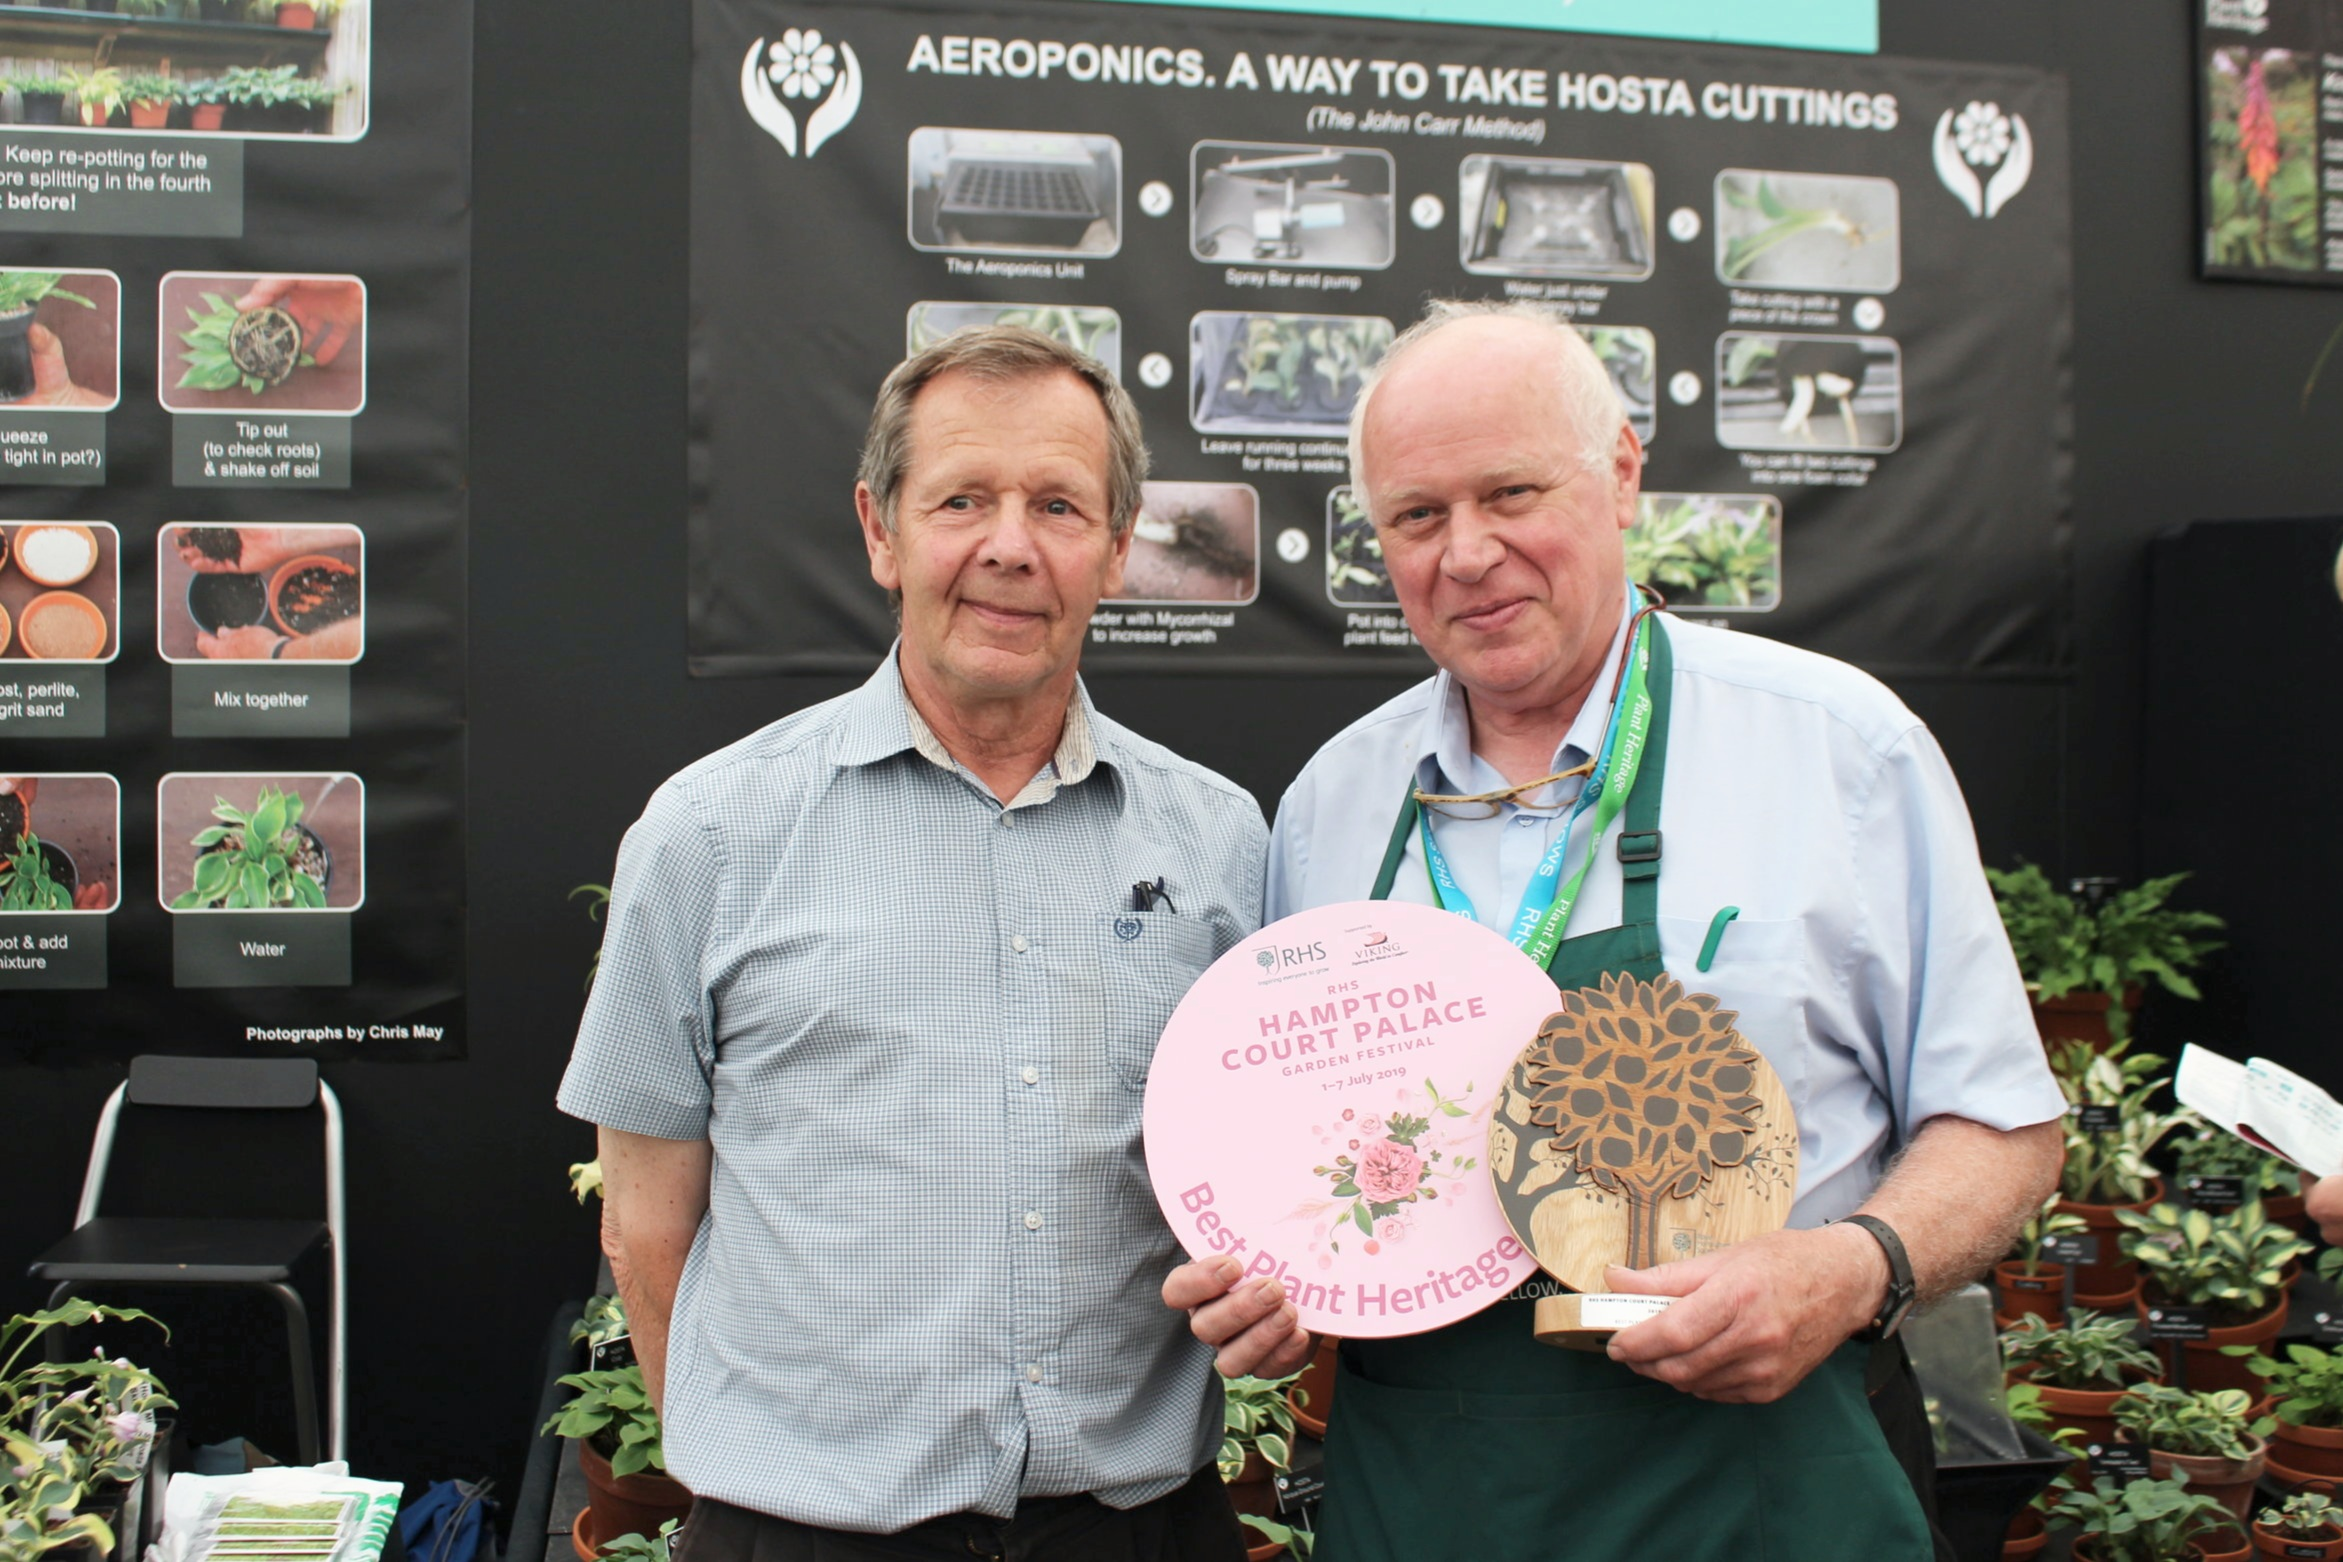 Jonathan with John Carr being presented with 'Best in Section' award - Thank You to Gill Groombridge for the excellent photo!